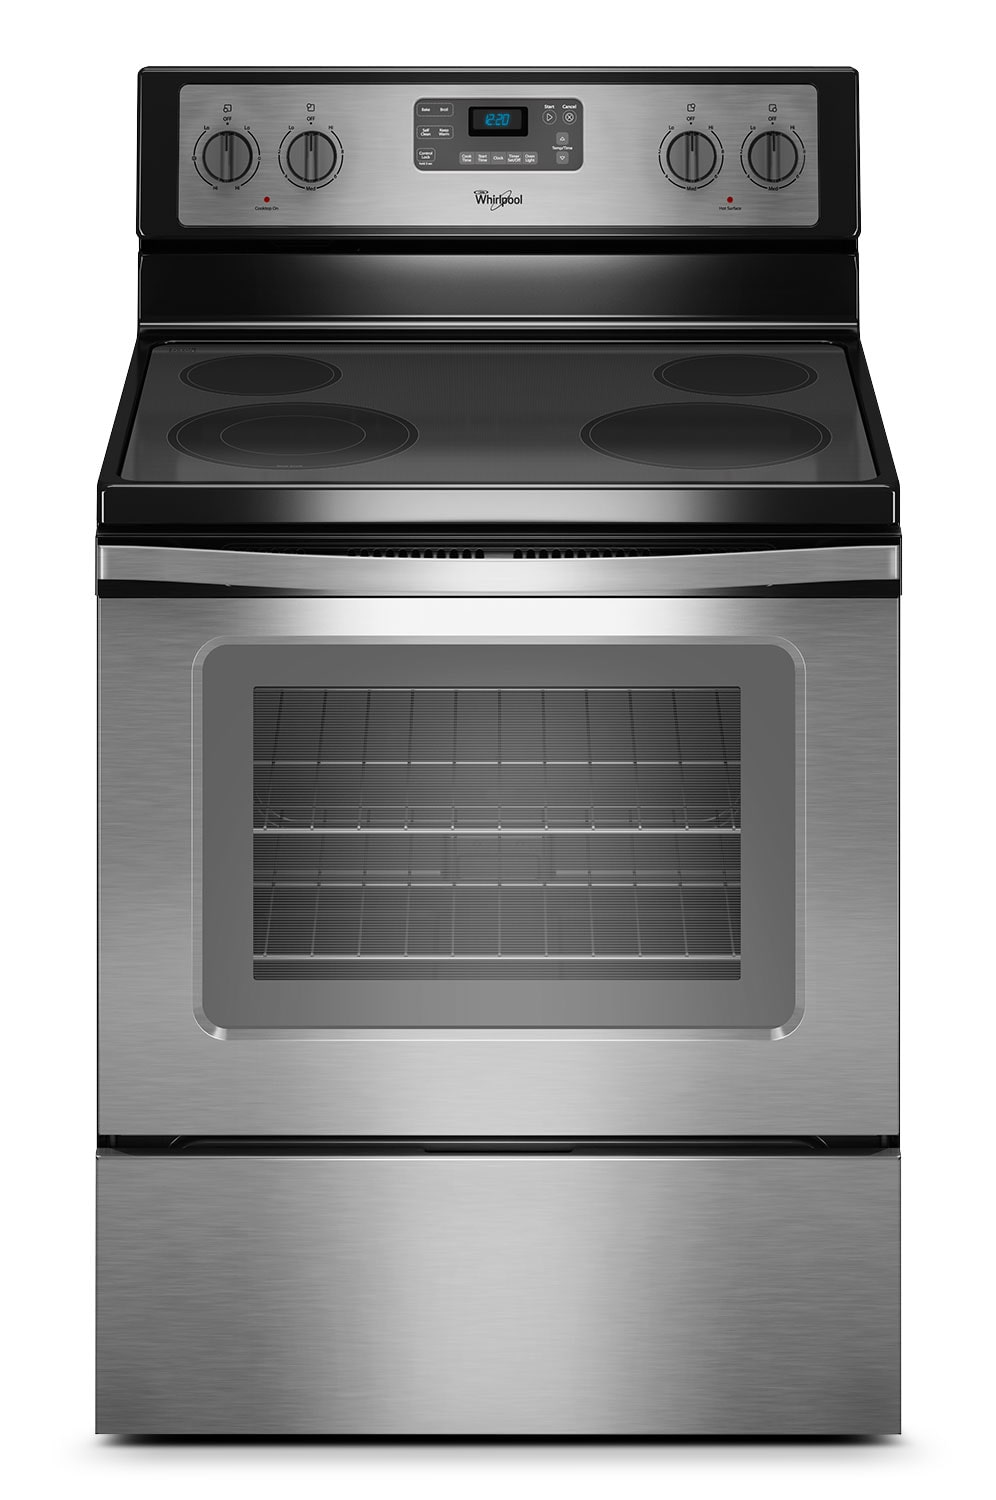 Whirlpool 5.3 Cu. Ft. Electric Range - Stainless Steel